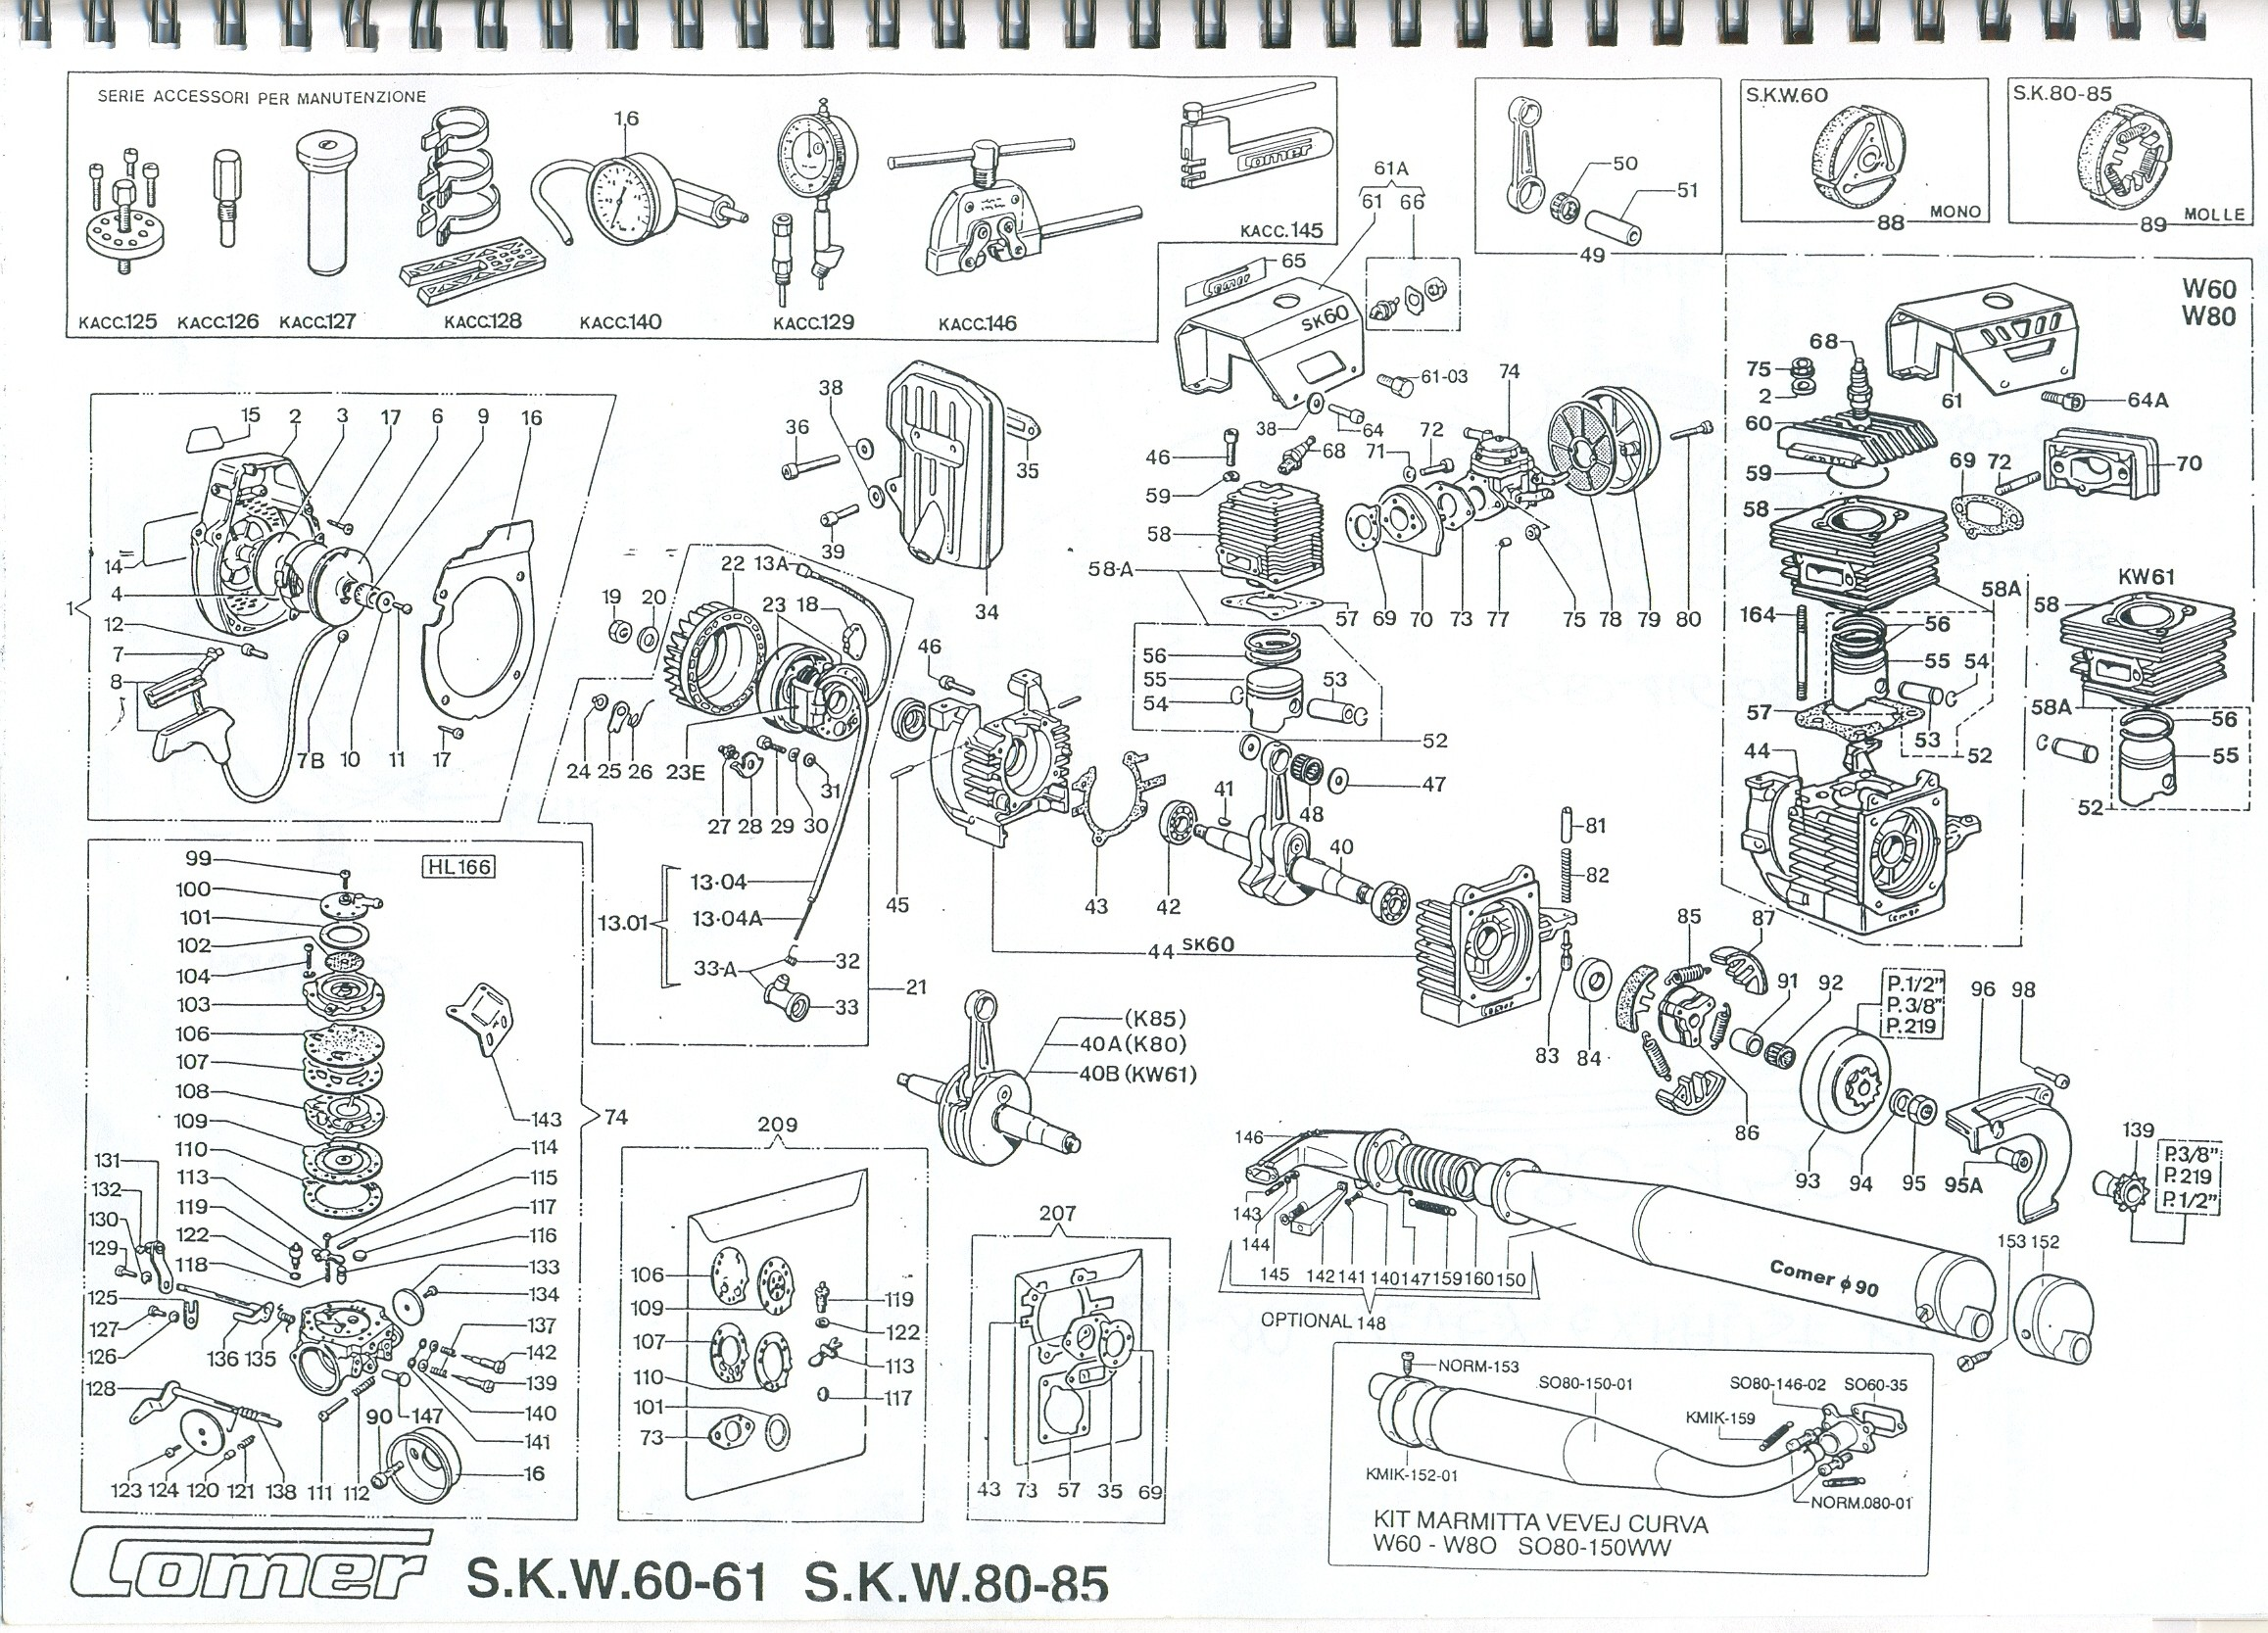 Subaru Engine Parts Diagram | My Wiring DIagram